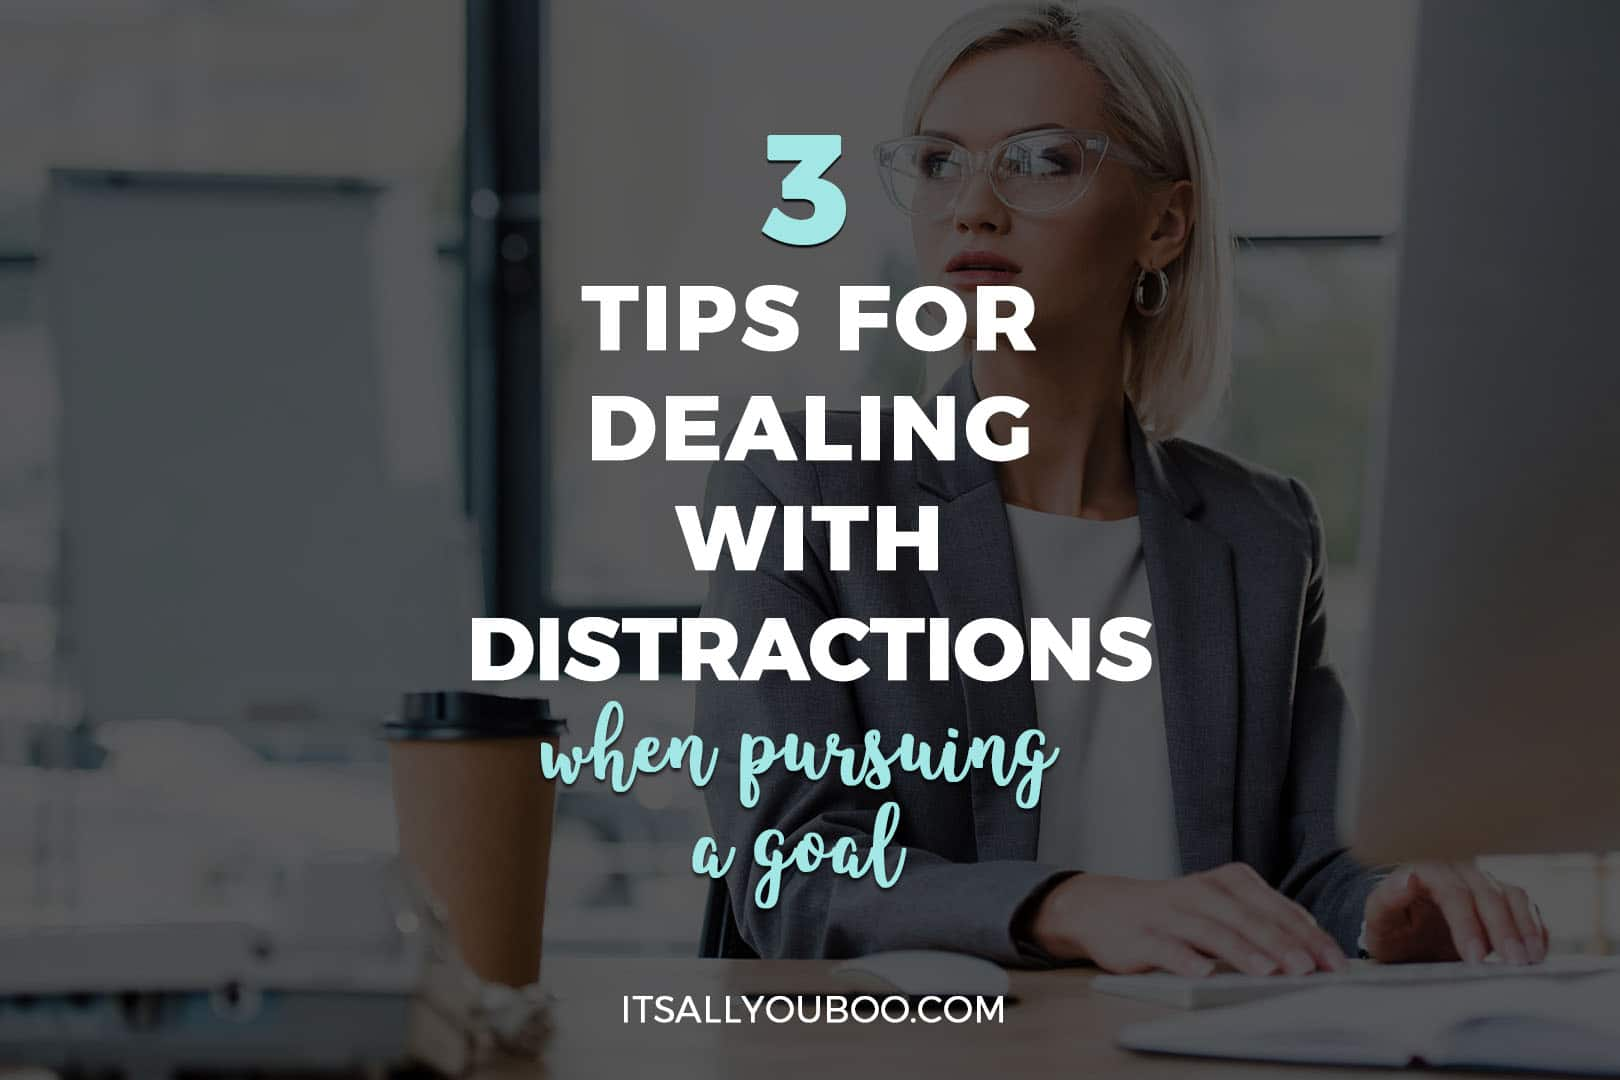 3 Tips For Dealing With Distractions When Pursuing A Goal